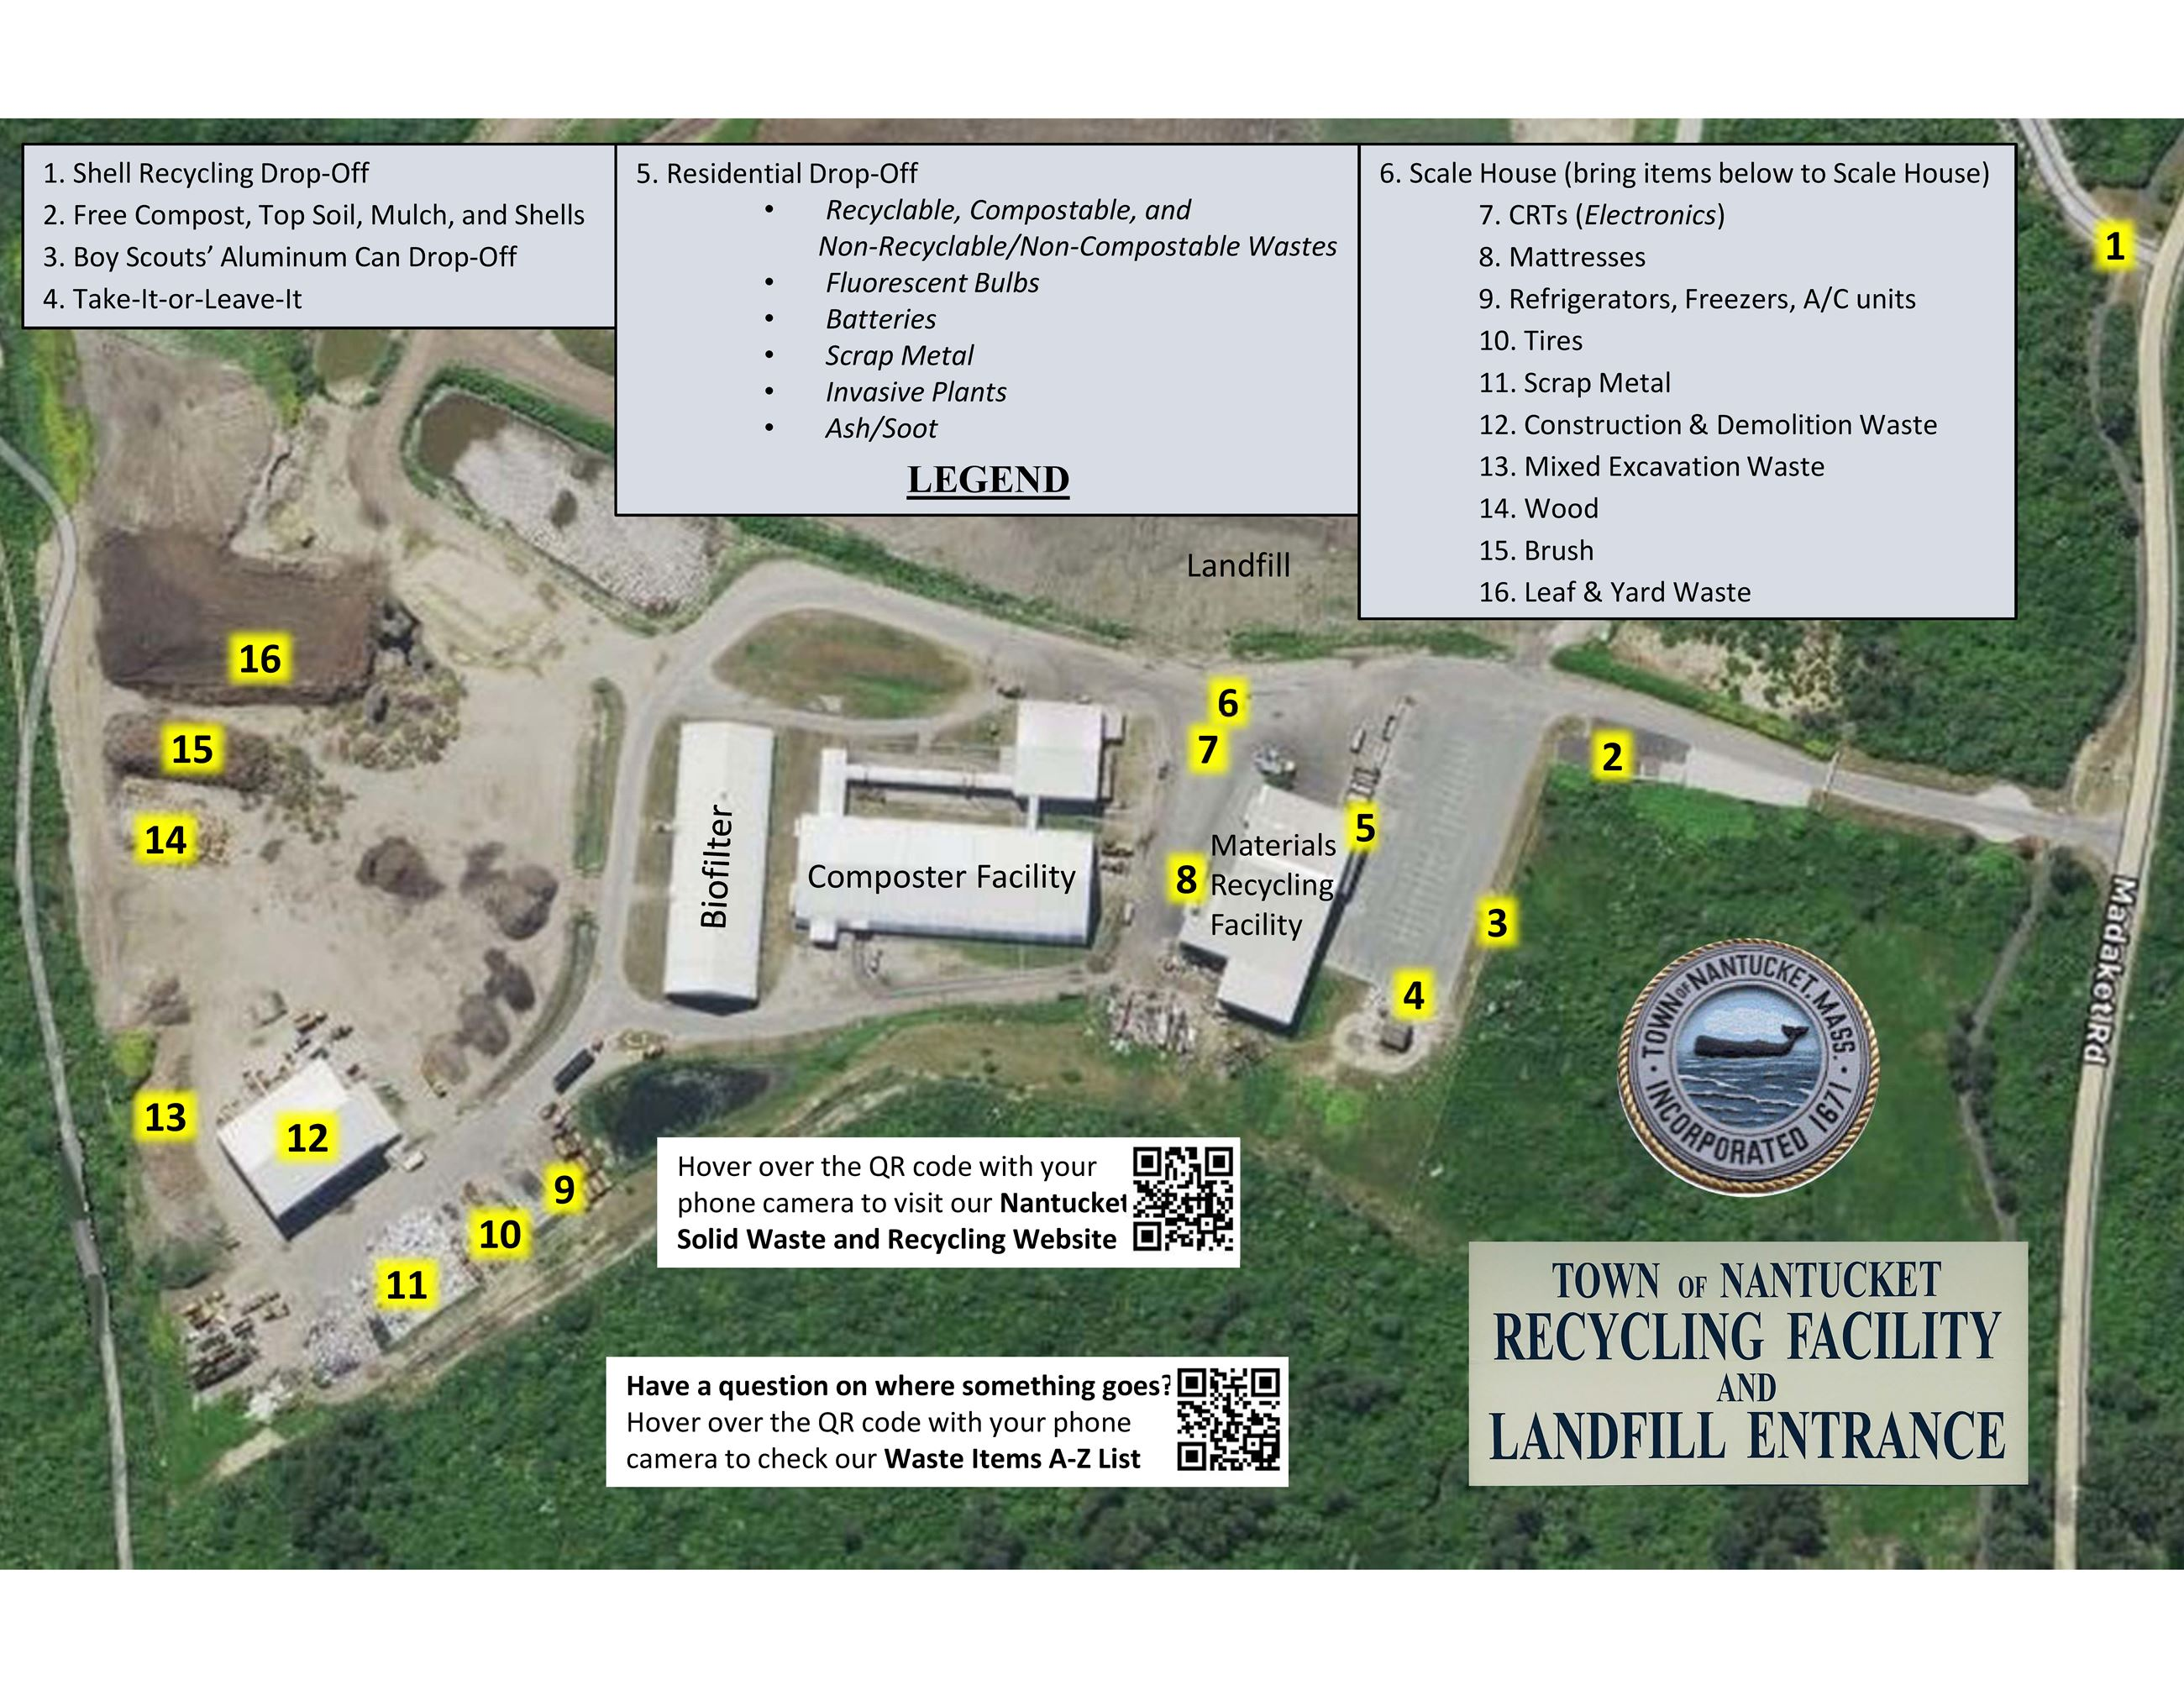 Recycling Facility and Landfill Entrance